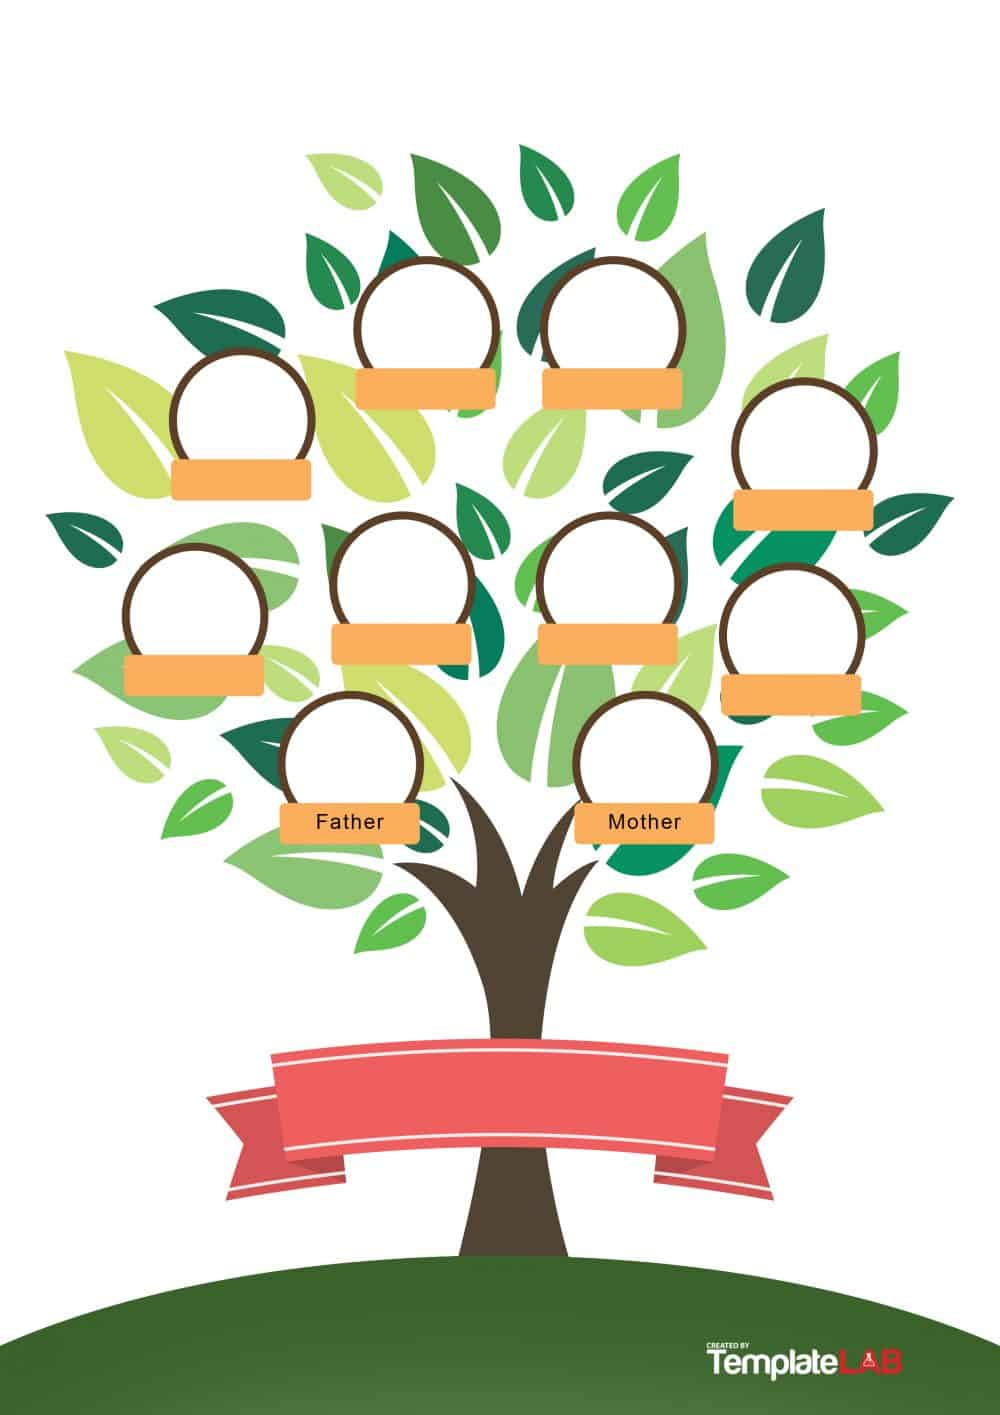 50+ Free Family Tree Templates (Word, Excel, Pdf) - Template Lab - Family Tree Maker Free Printable